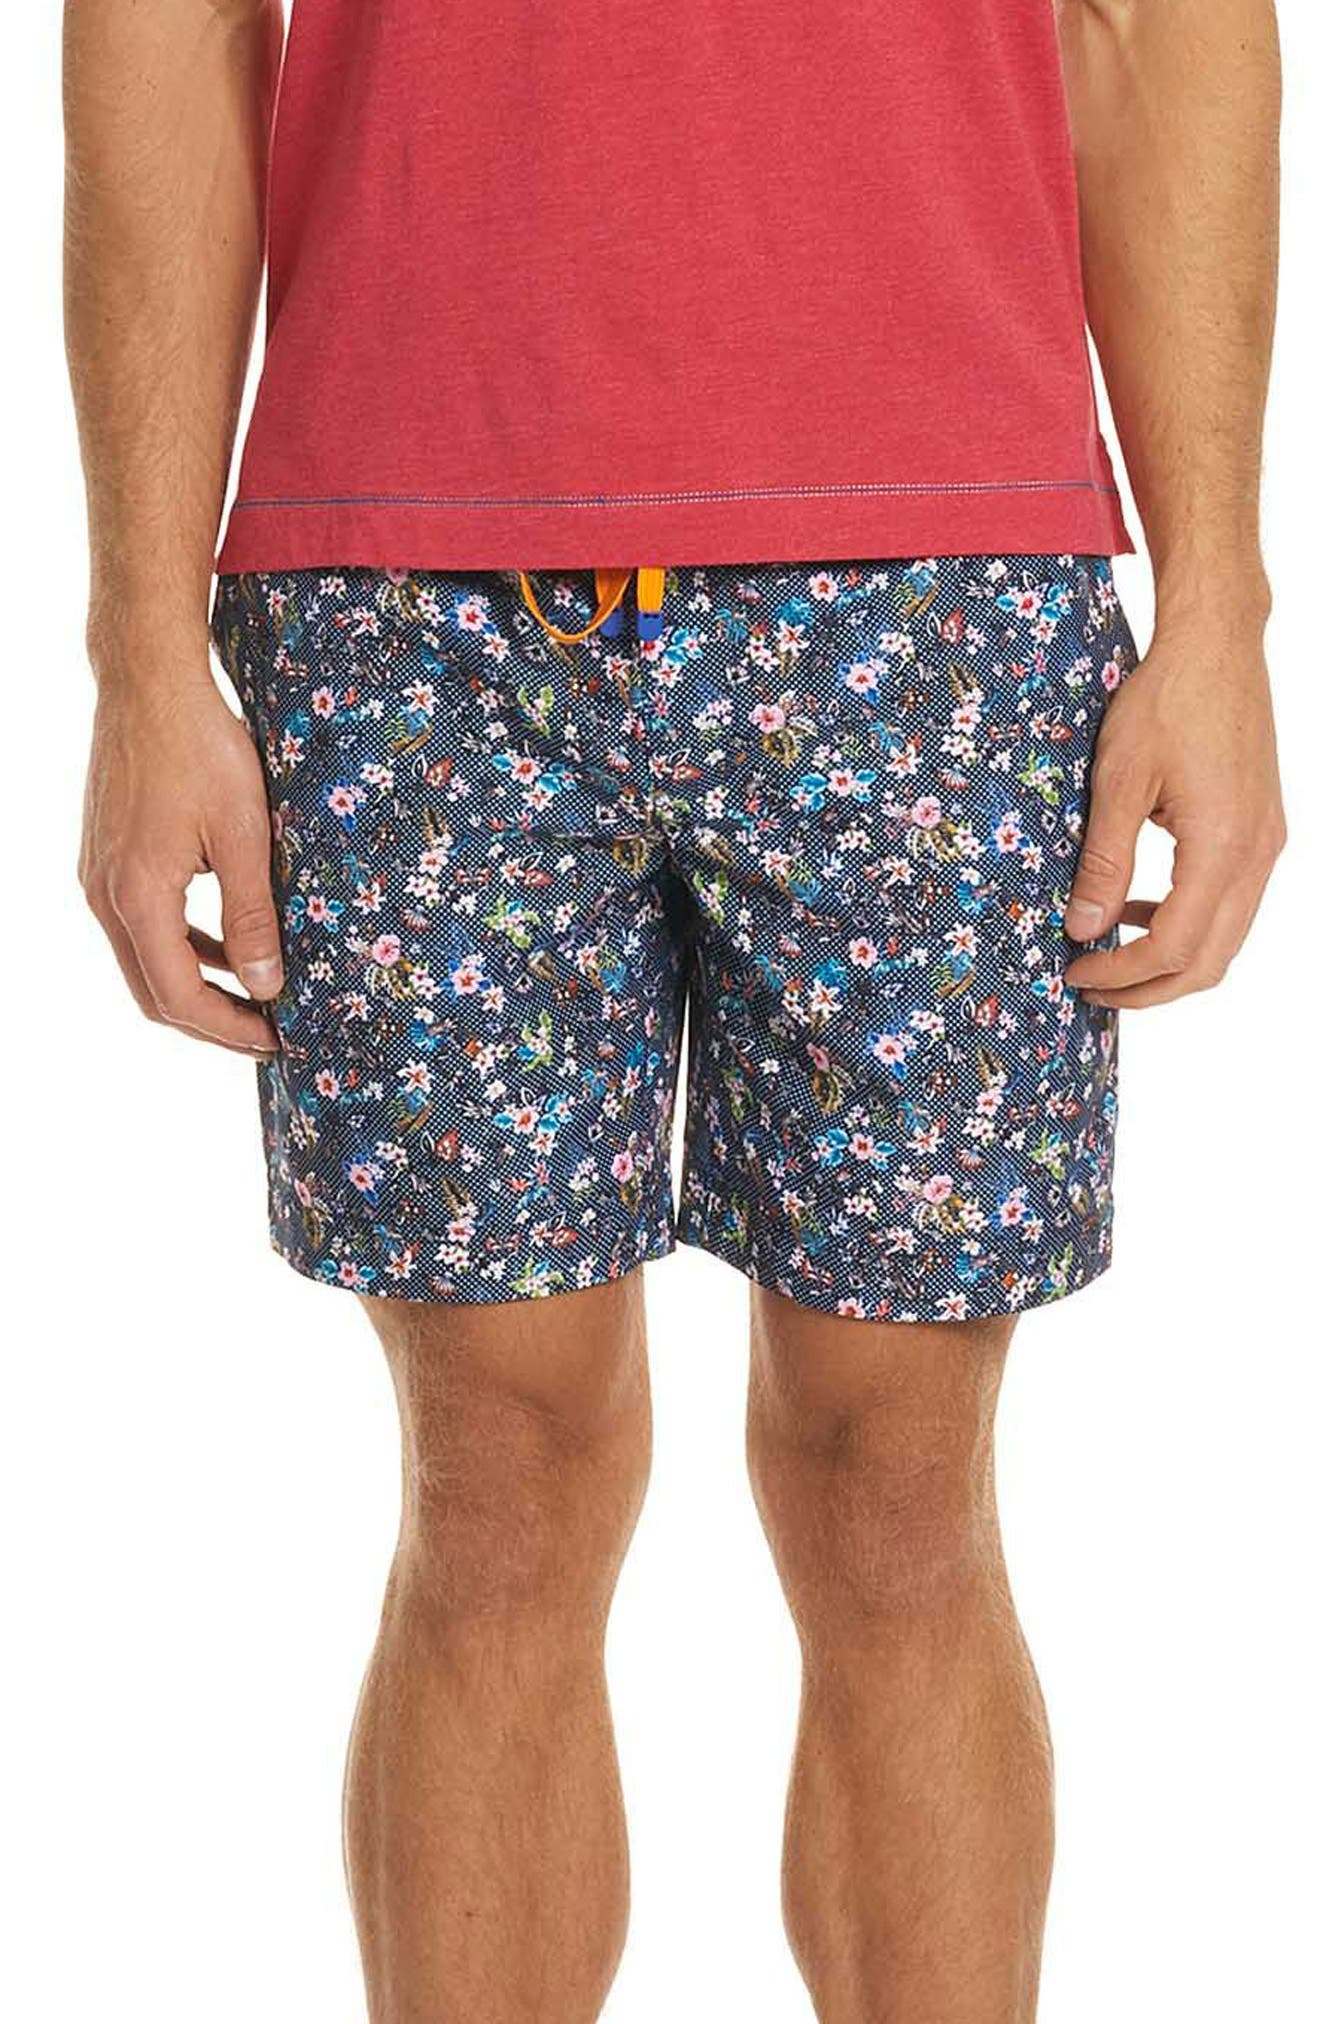 Gali Swim Trunks,                             Main thumbnail 1, color,                             405